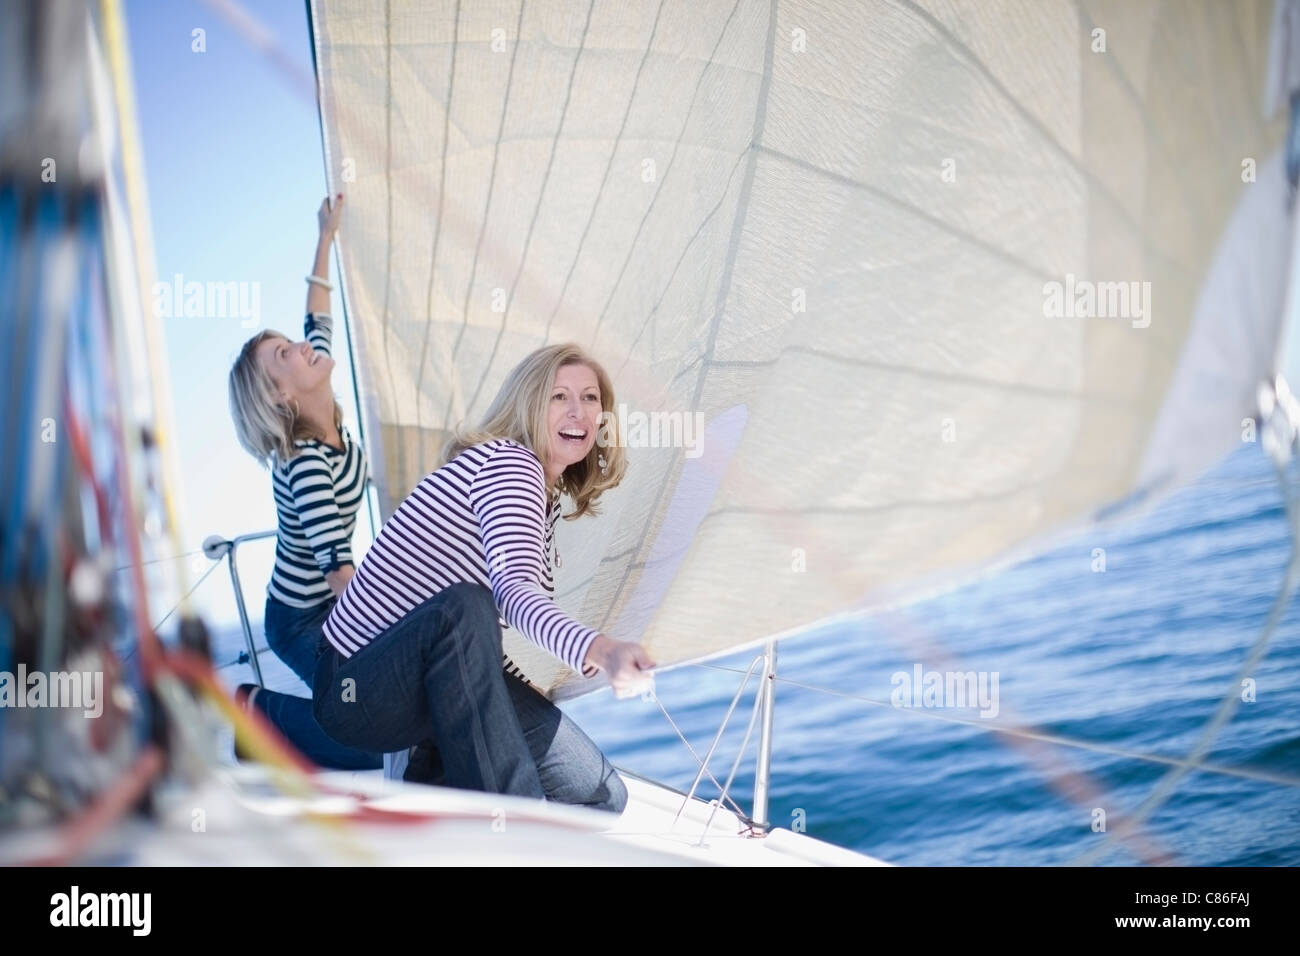 Women adjusting sail on boat - Stock Image